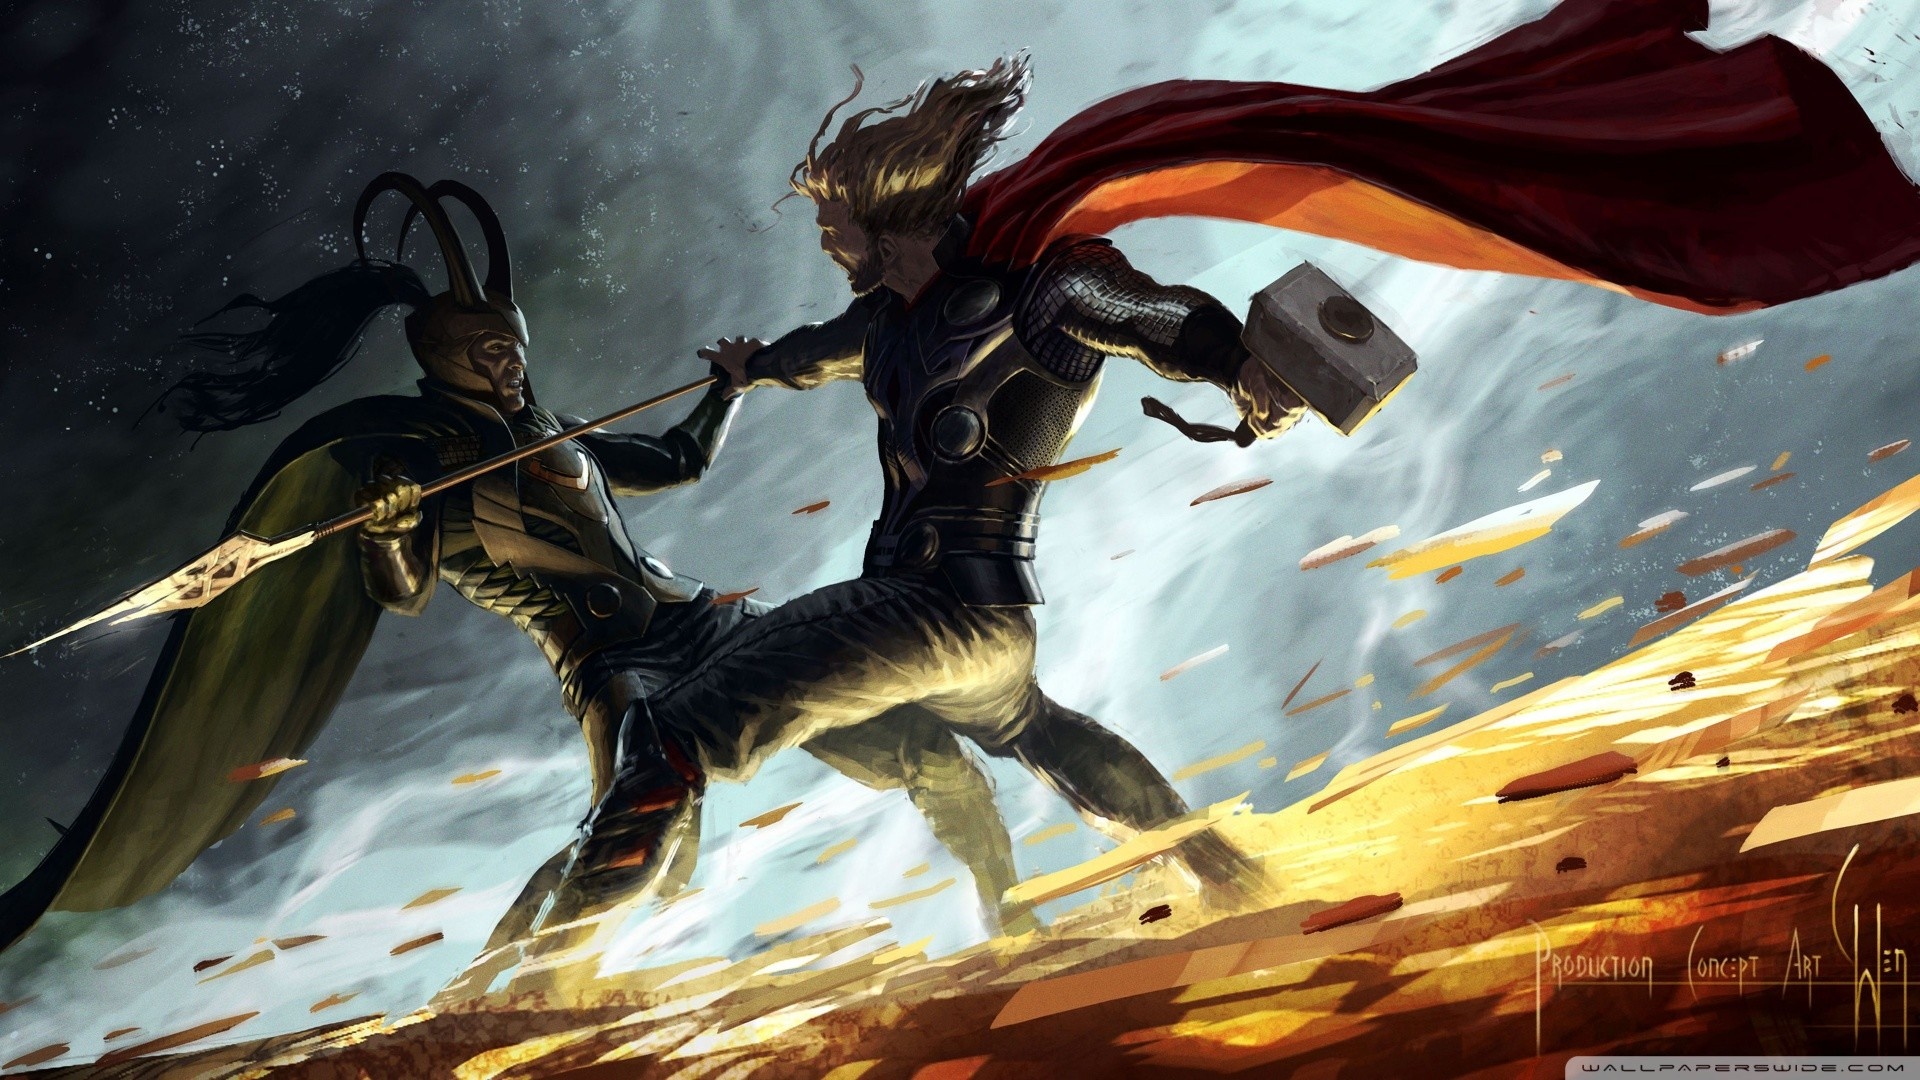 Res: 1920x1080, Marvel Live-action Movies images thor wallpaper HD wallpaper and background  photos